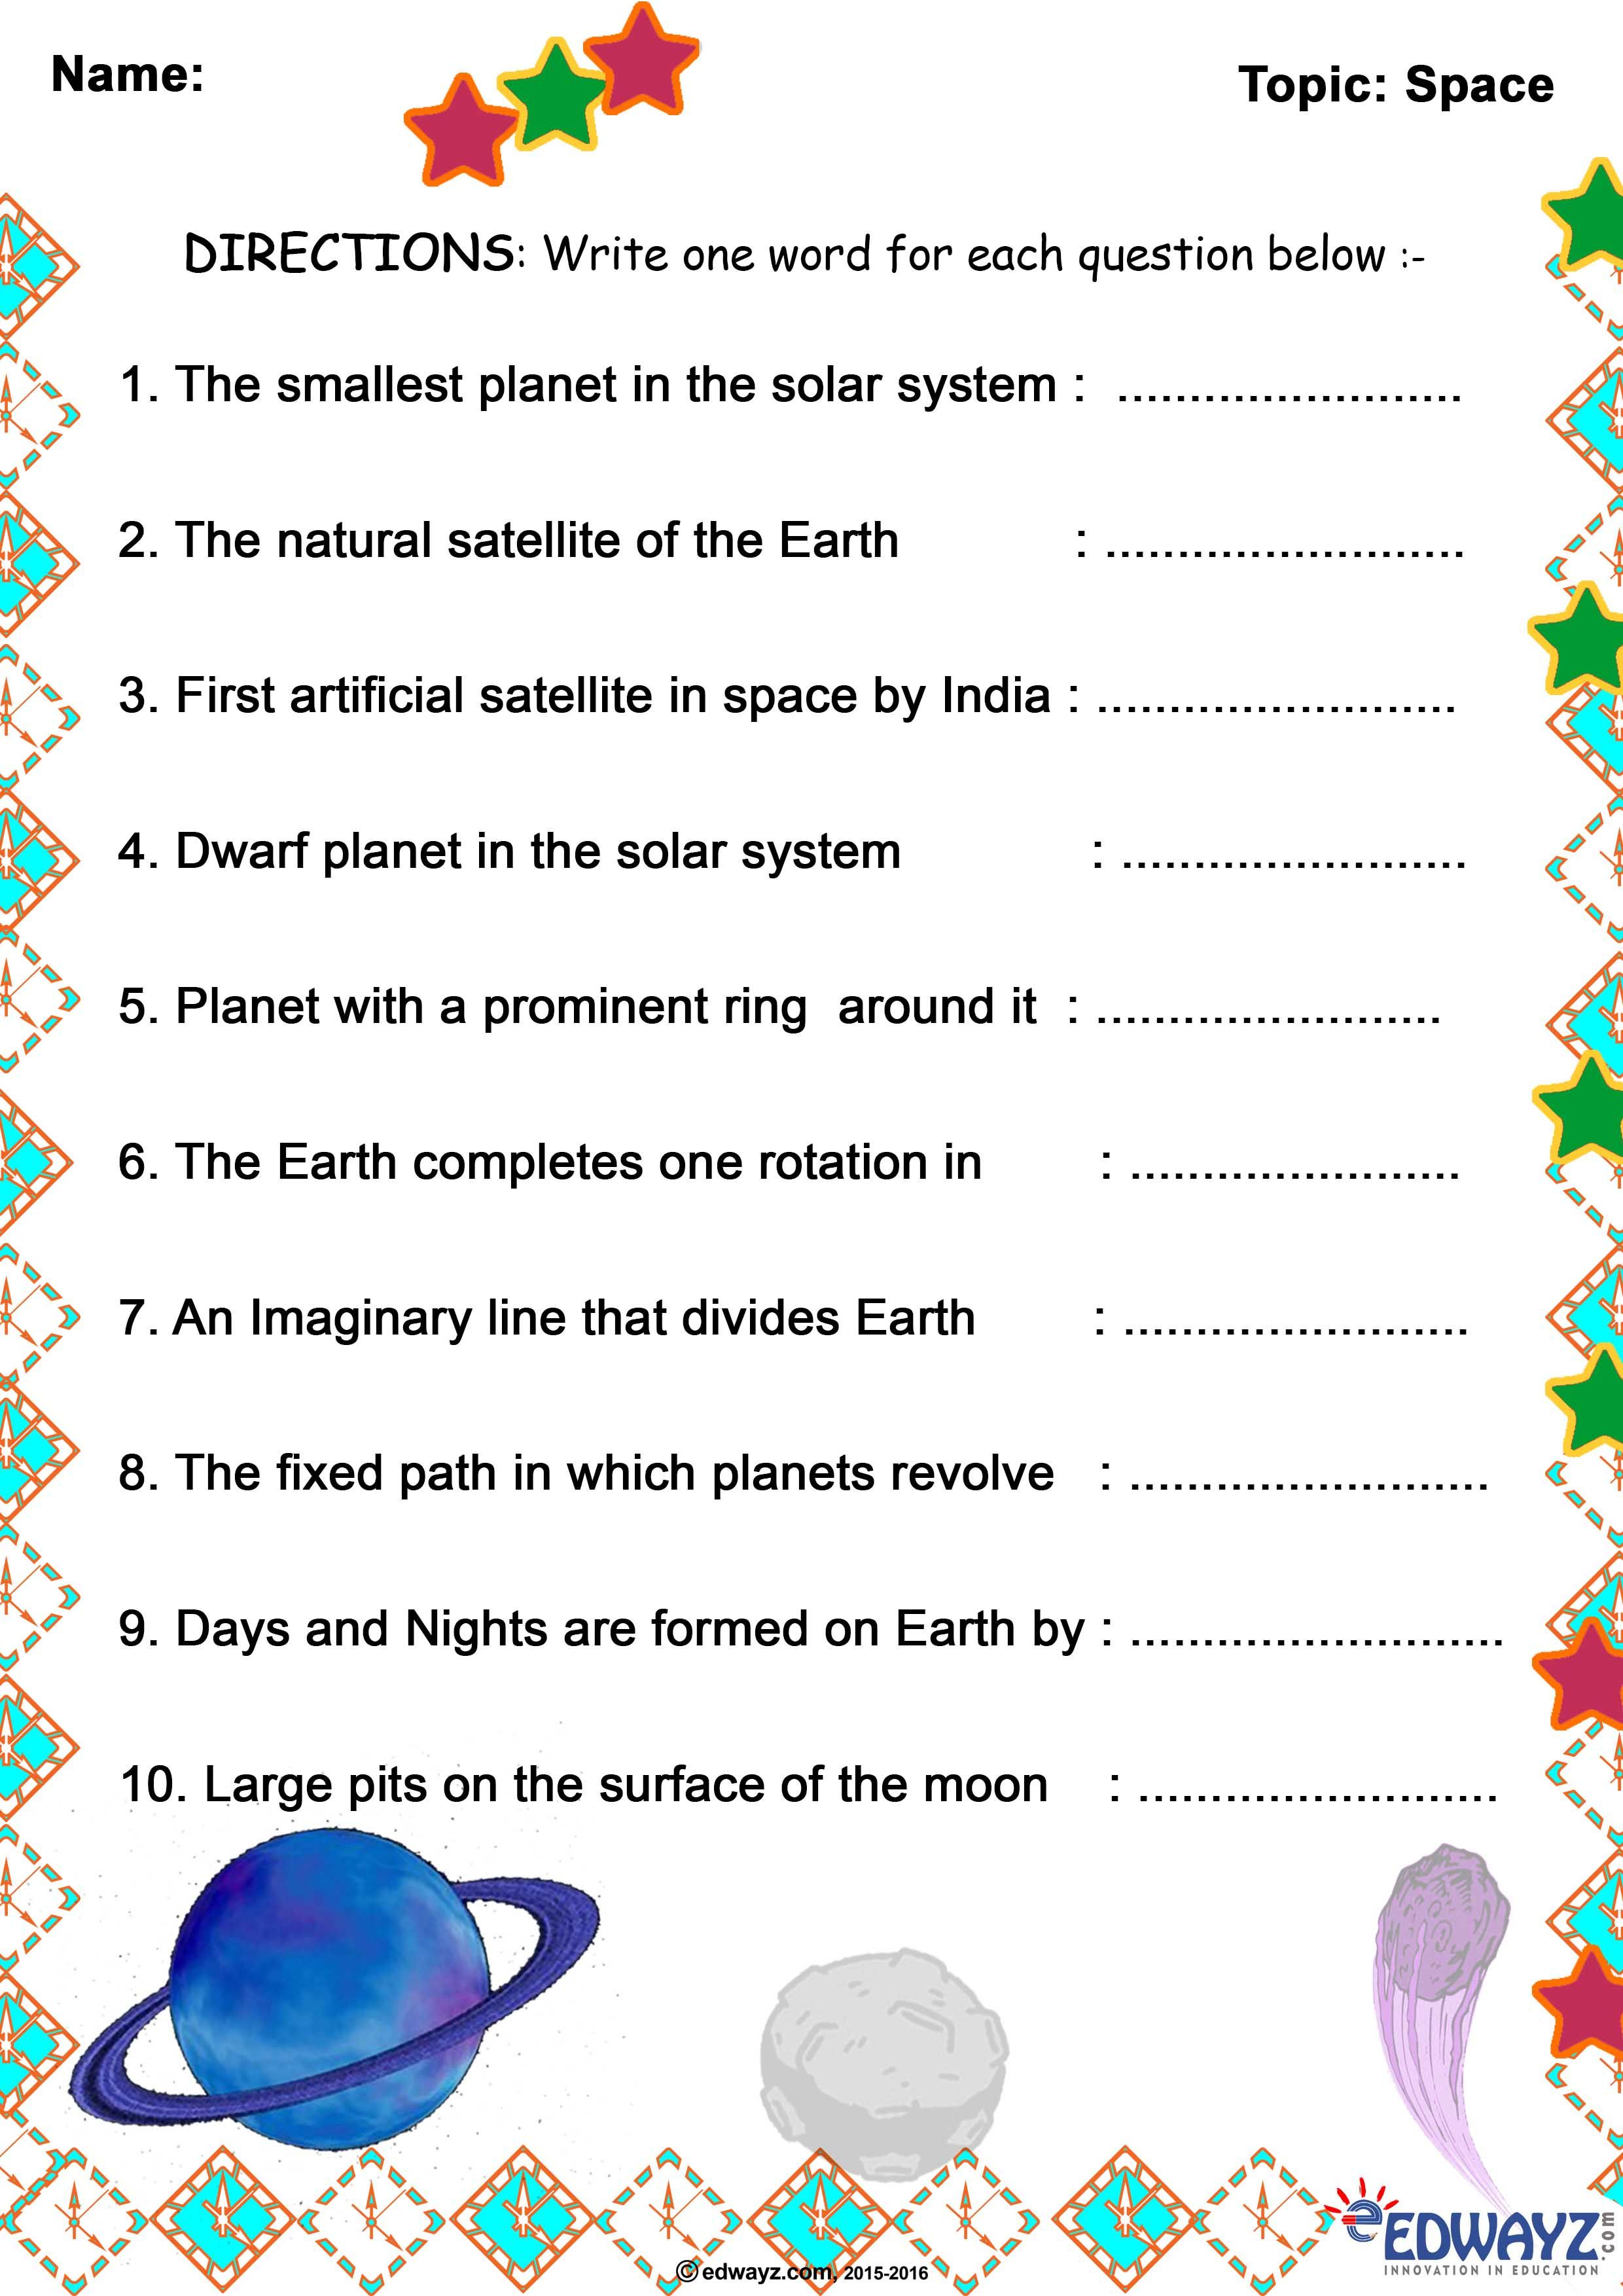 Space Edwayz Class 4 Grade 4 Evs Freeworksheets With Images